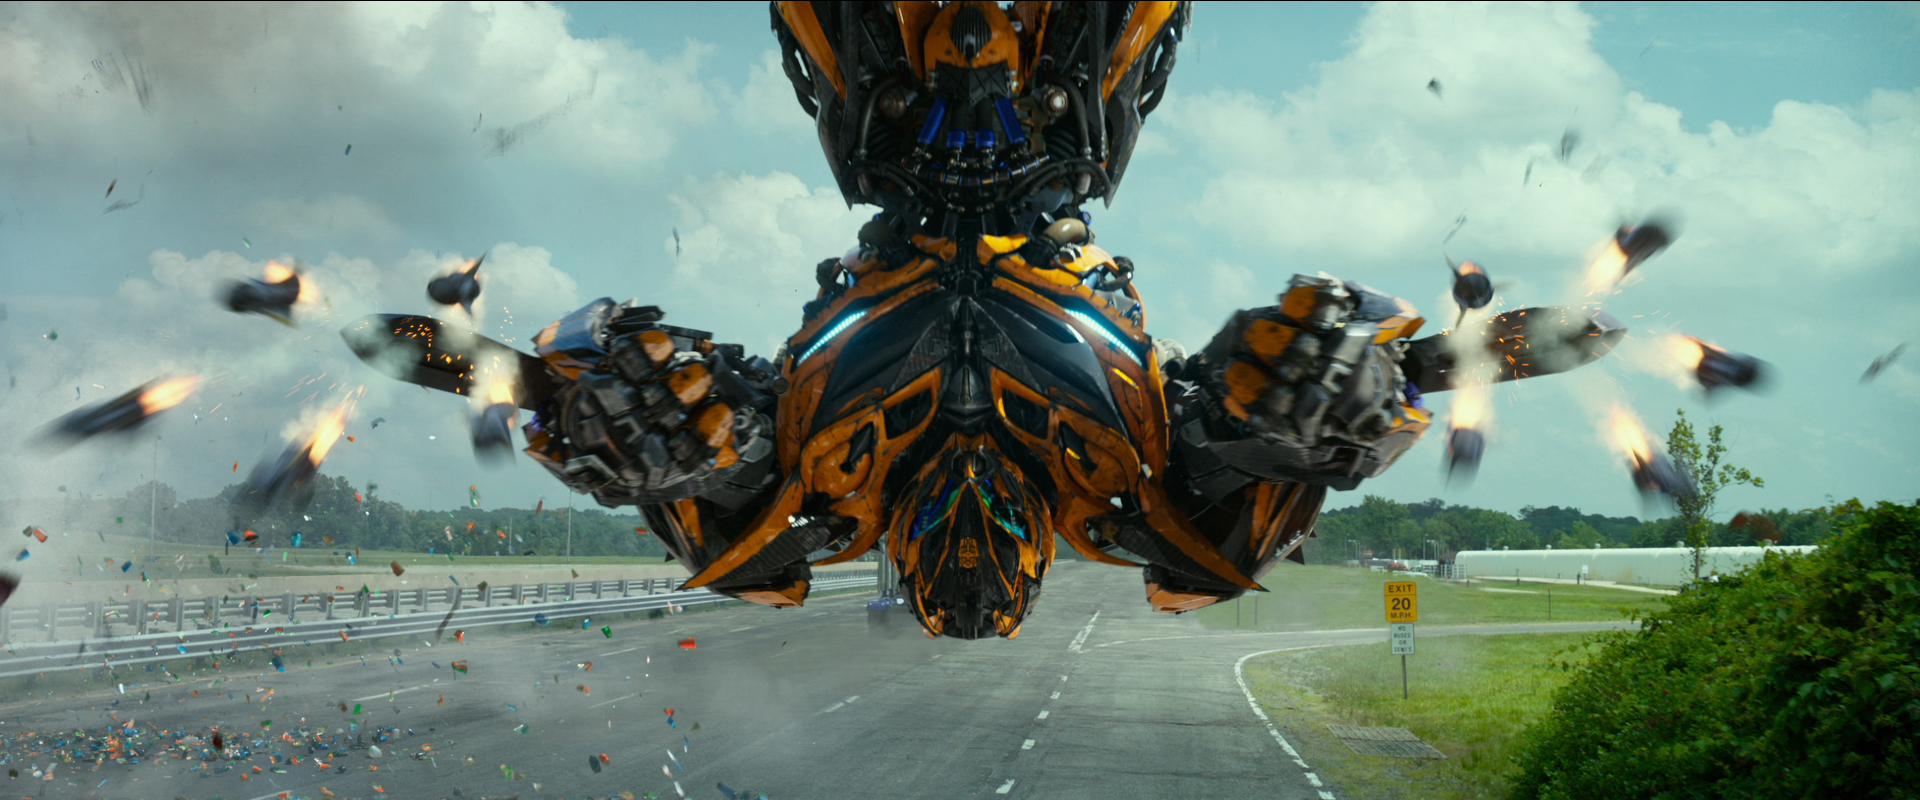 Transformers box office